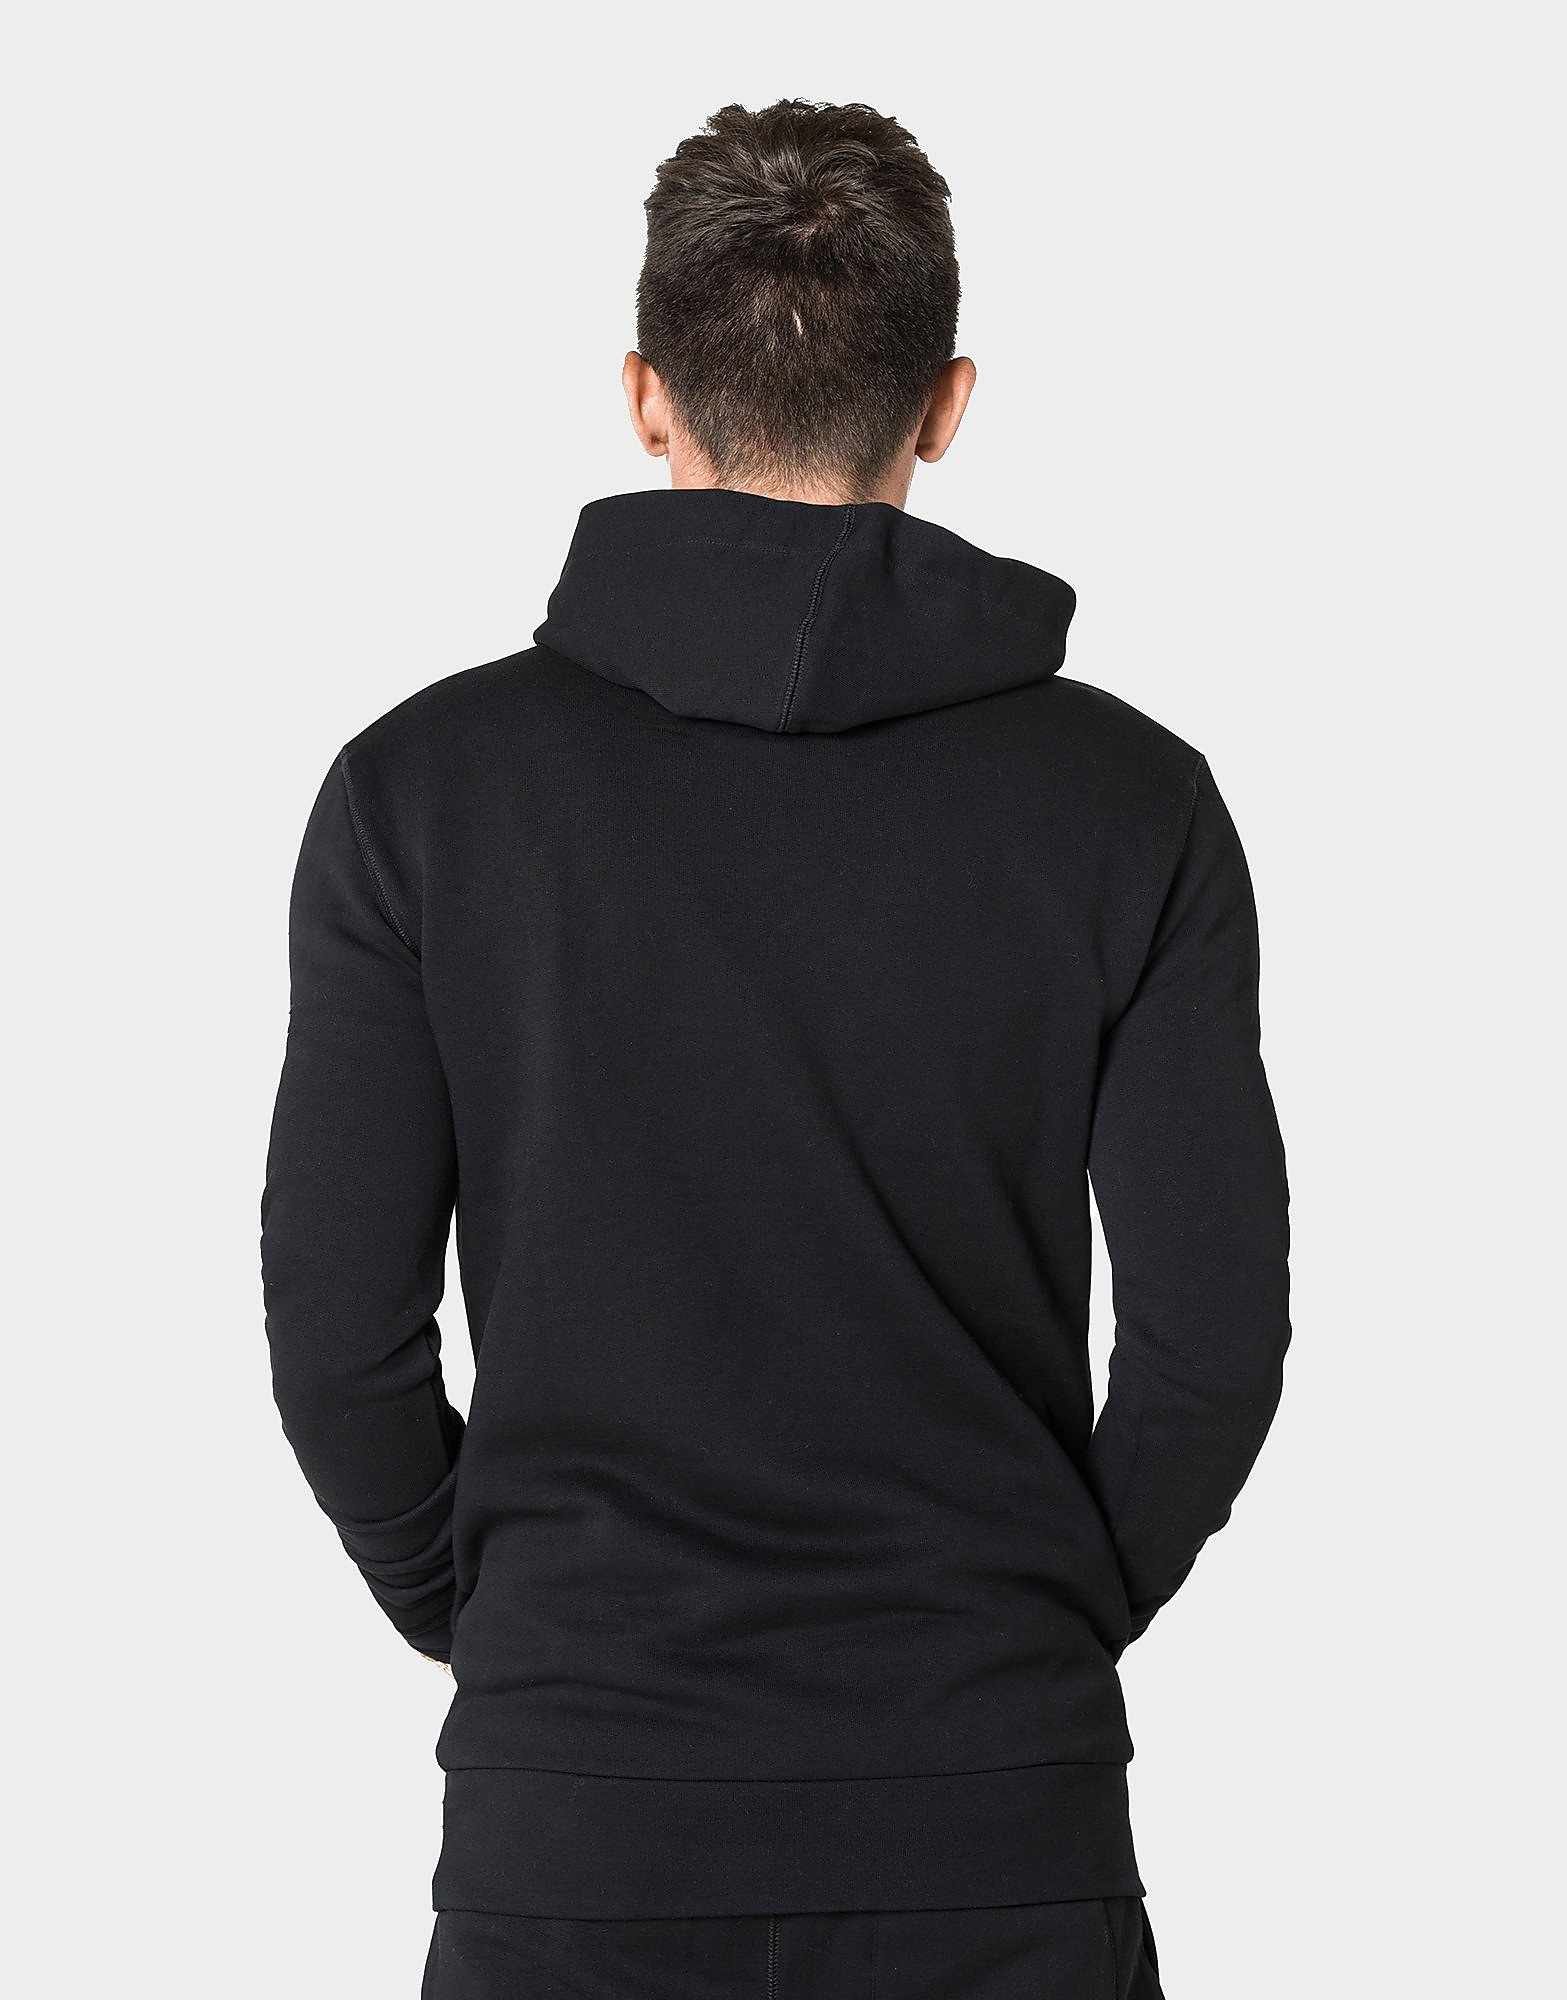 Mens Hoodies Zip Up Hoodies And Pullover Hoodies Jd Sports